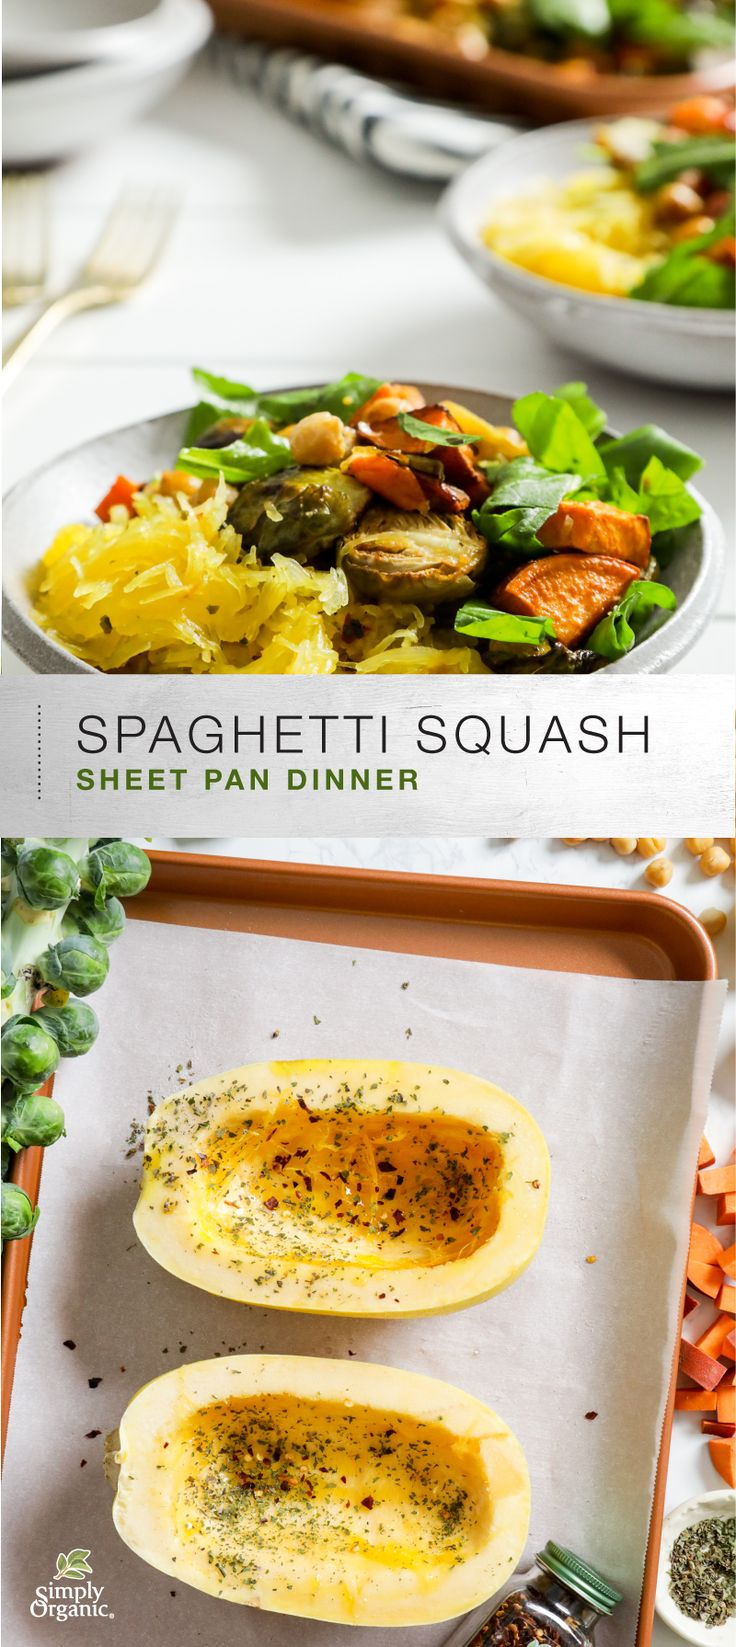 """Make an all-vegetable """"spaghetti primavera"""" dinner on a single sheet pan with this recipe featuring spaghetti squash, roasted veggies and arugula, uniquely seasoned with herbs, crushed red pepper and a generous sprinkling of fresh lemon."""